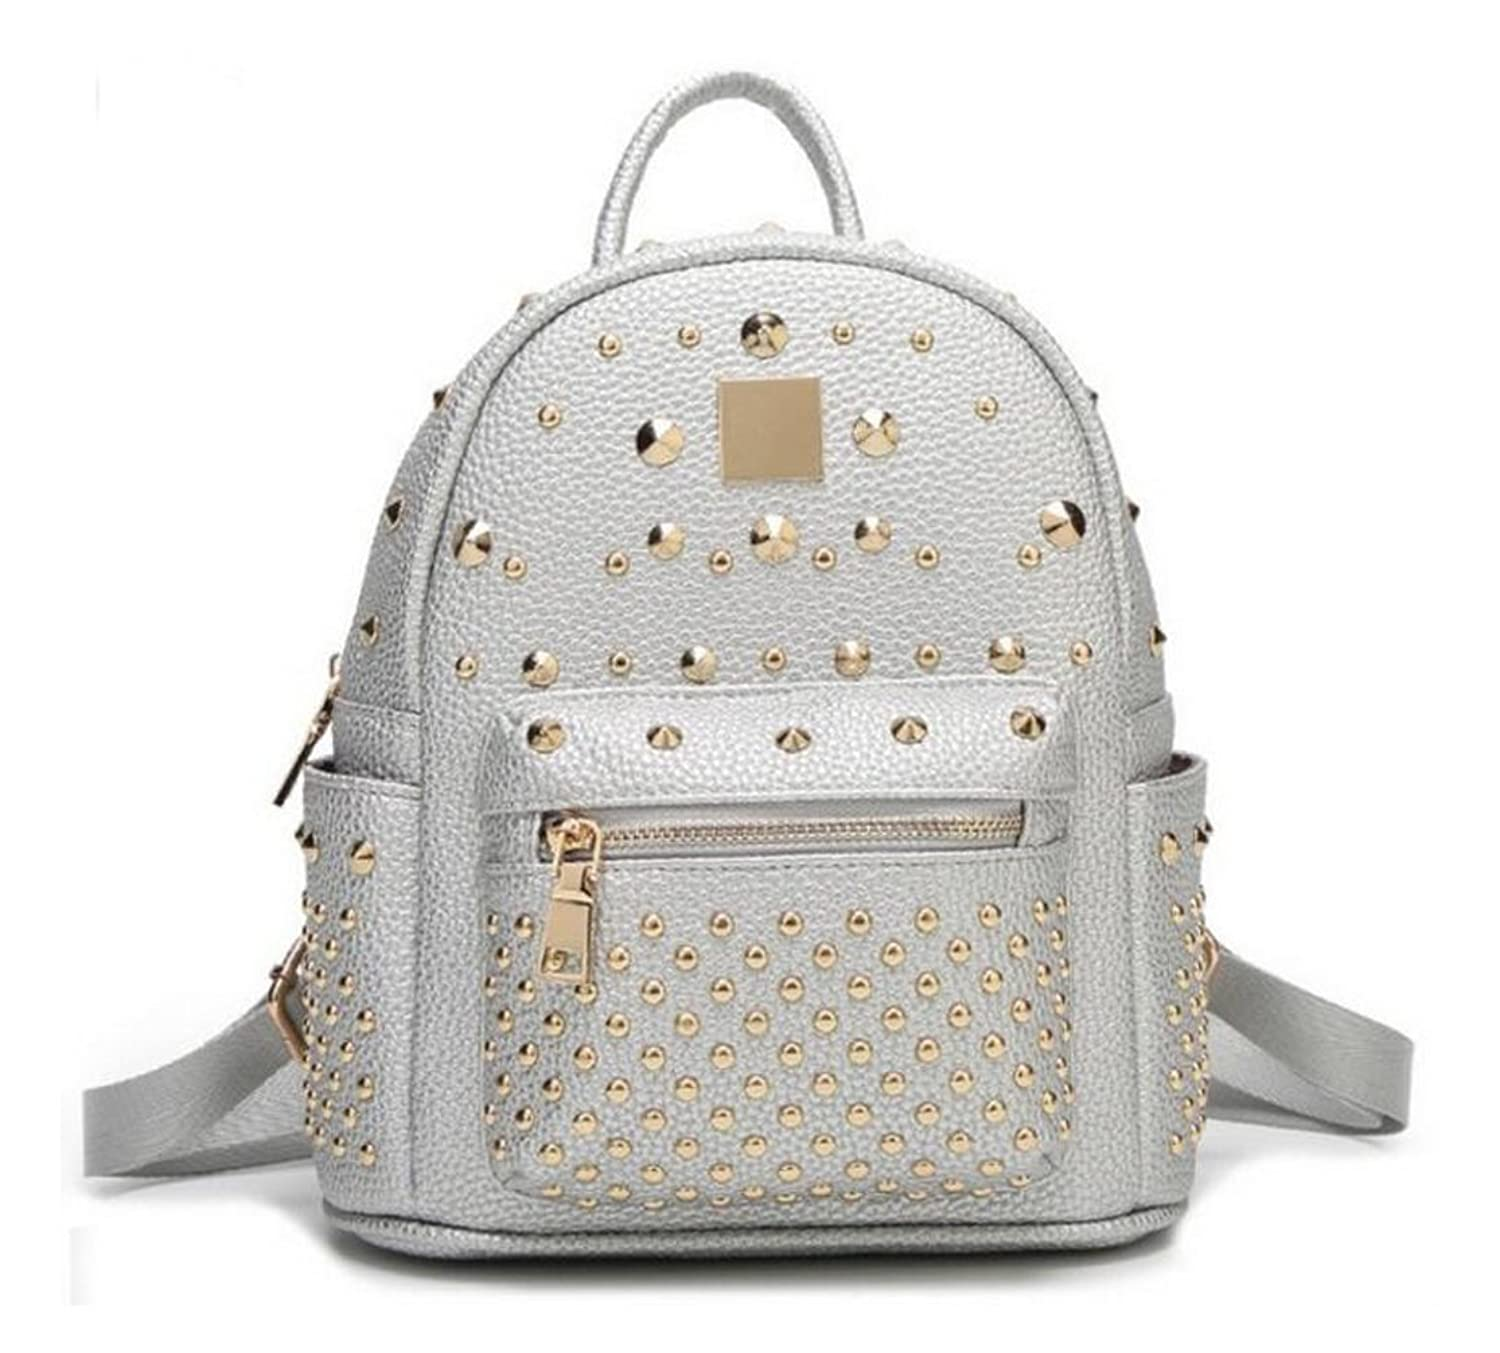 Longzibog Leather 2016 New Backpack Bag, Fashion Cute Lightweight Backpacks for Teen Young Girls Multicolor